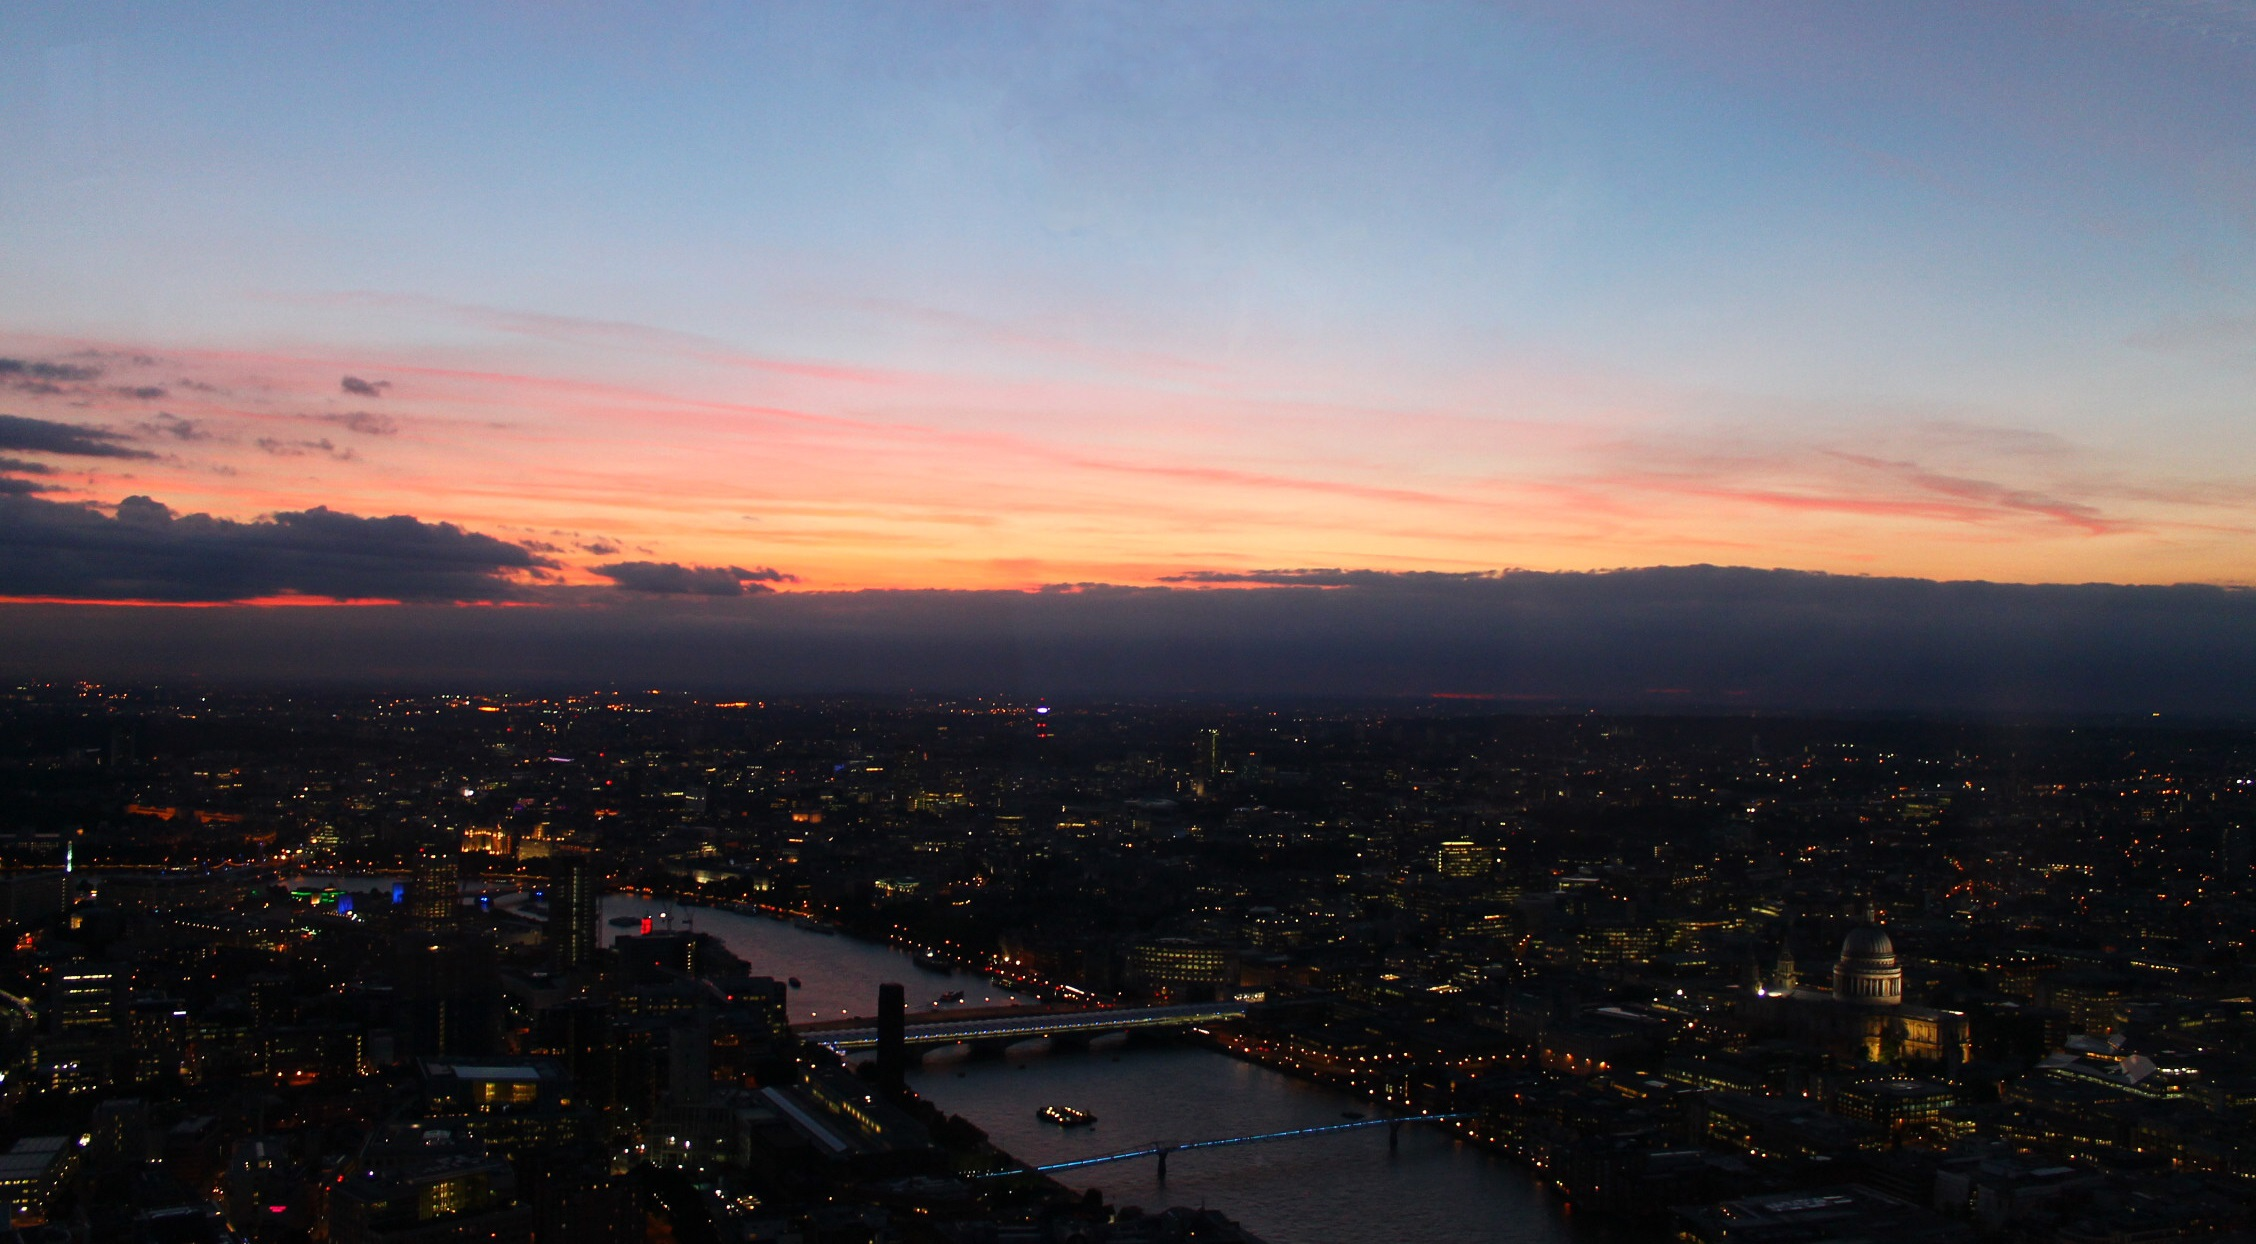 Anochecer en Londres desde The Shard